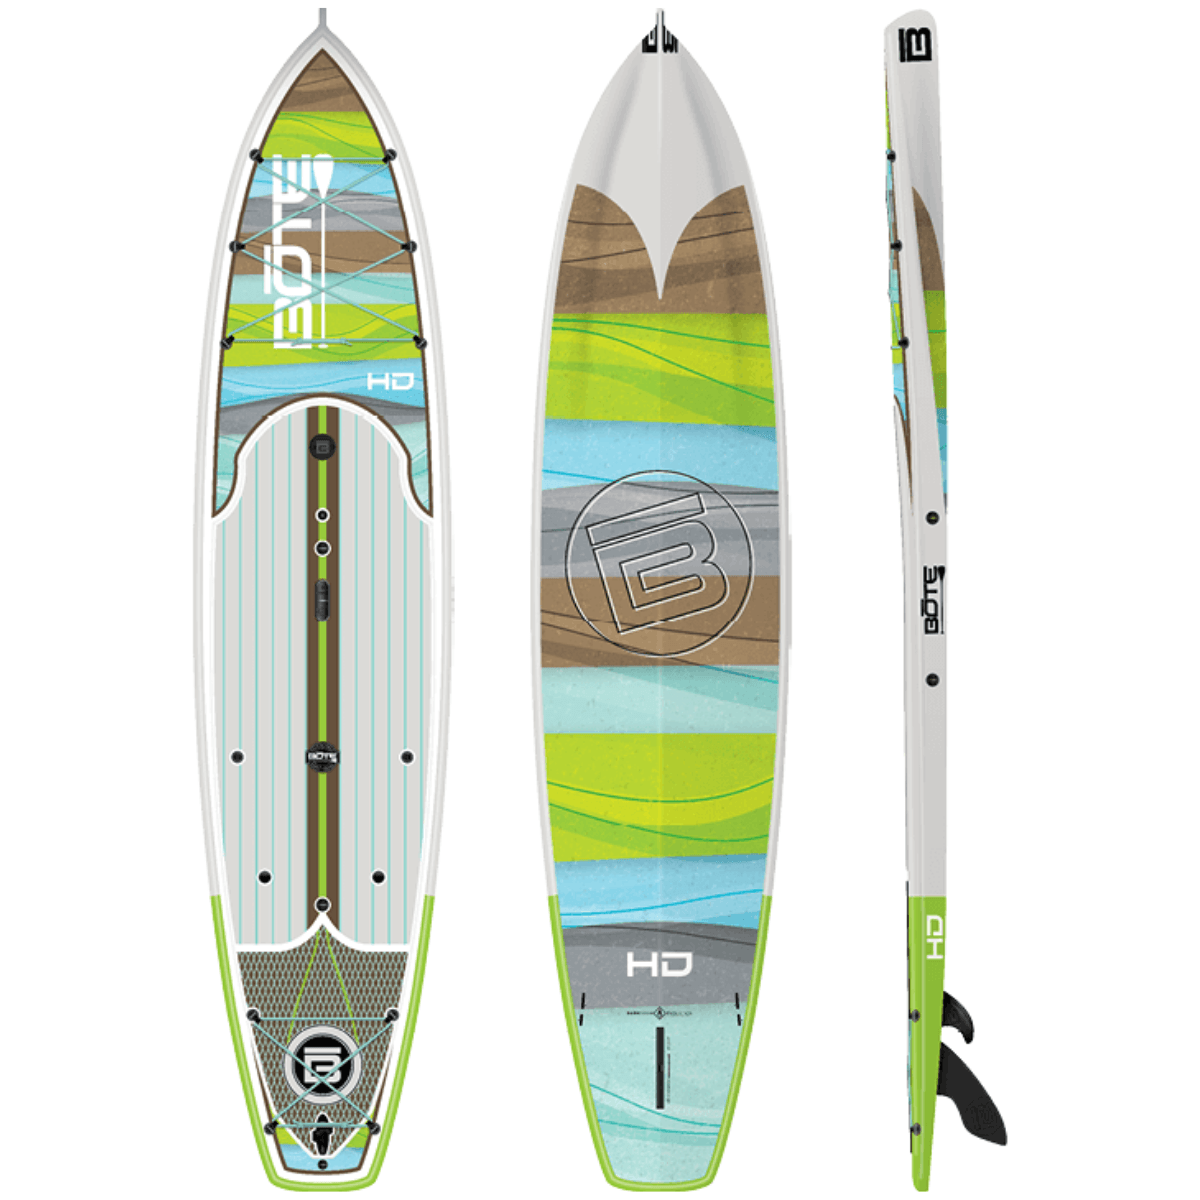 BOTE 12' HD NATIVE DEMO